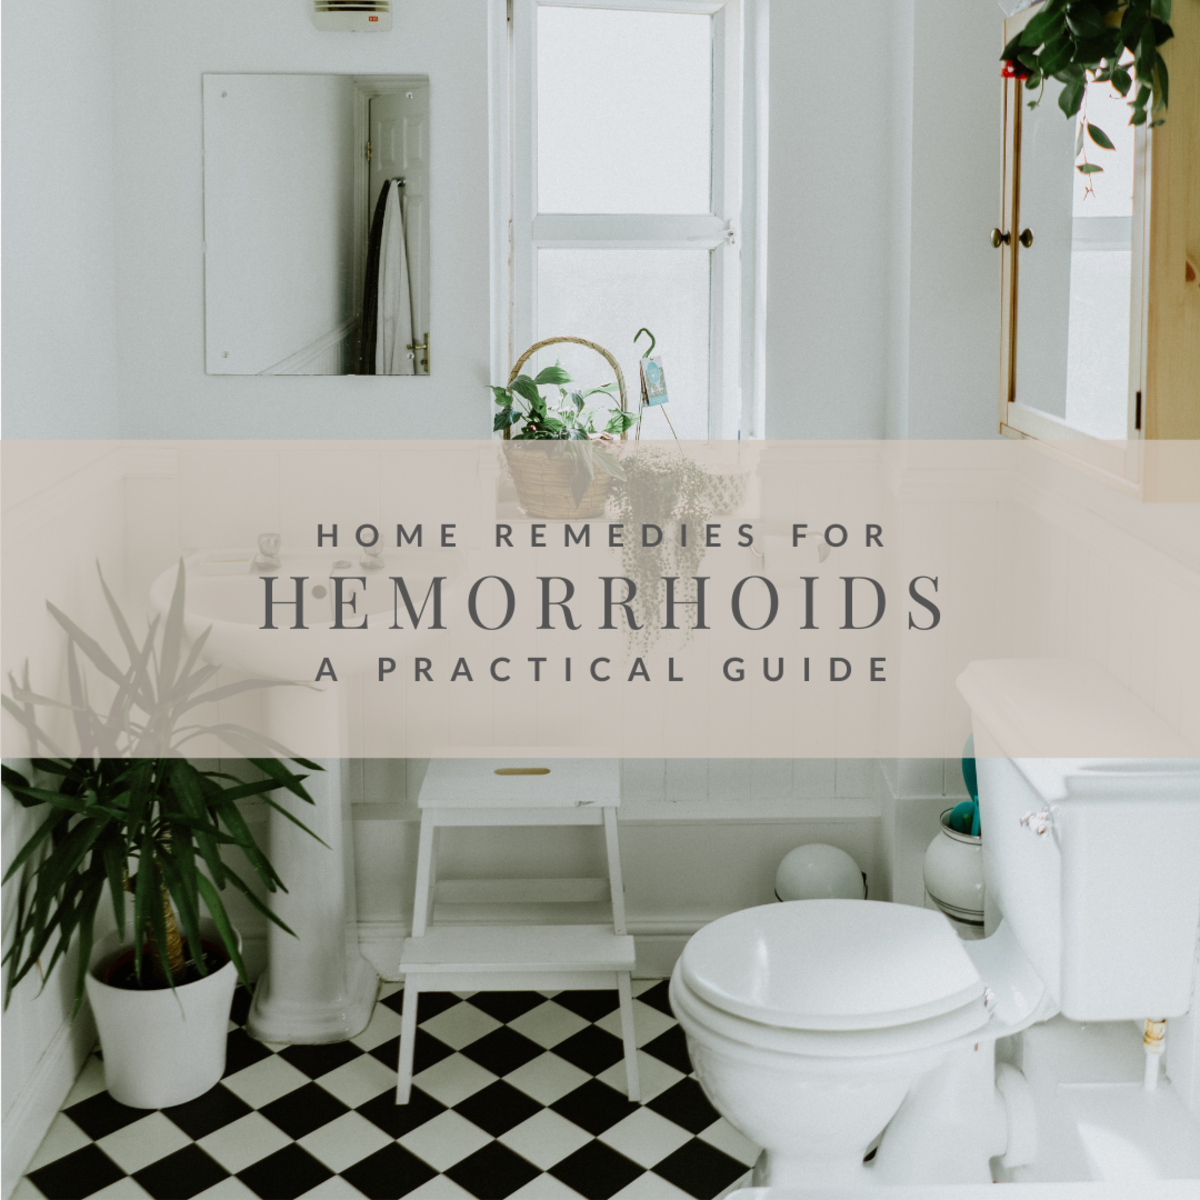 Help for Hemorrhoids